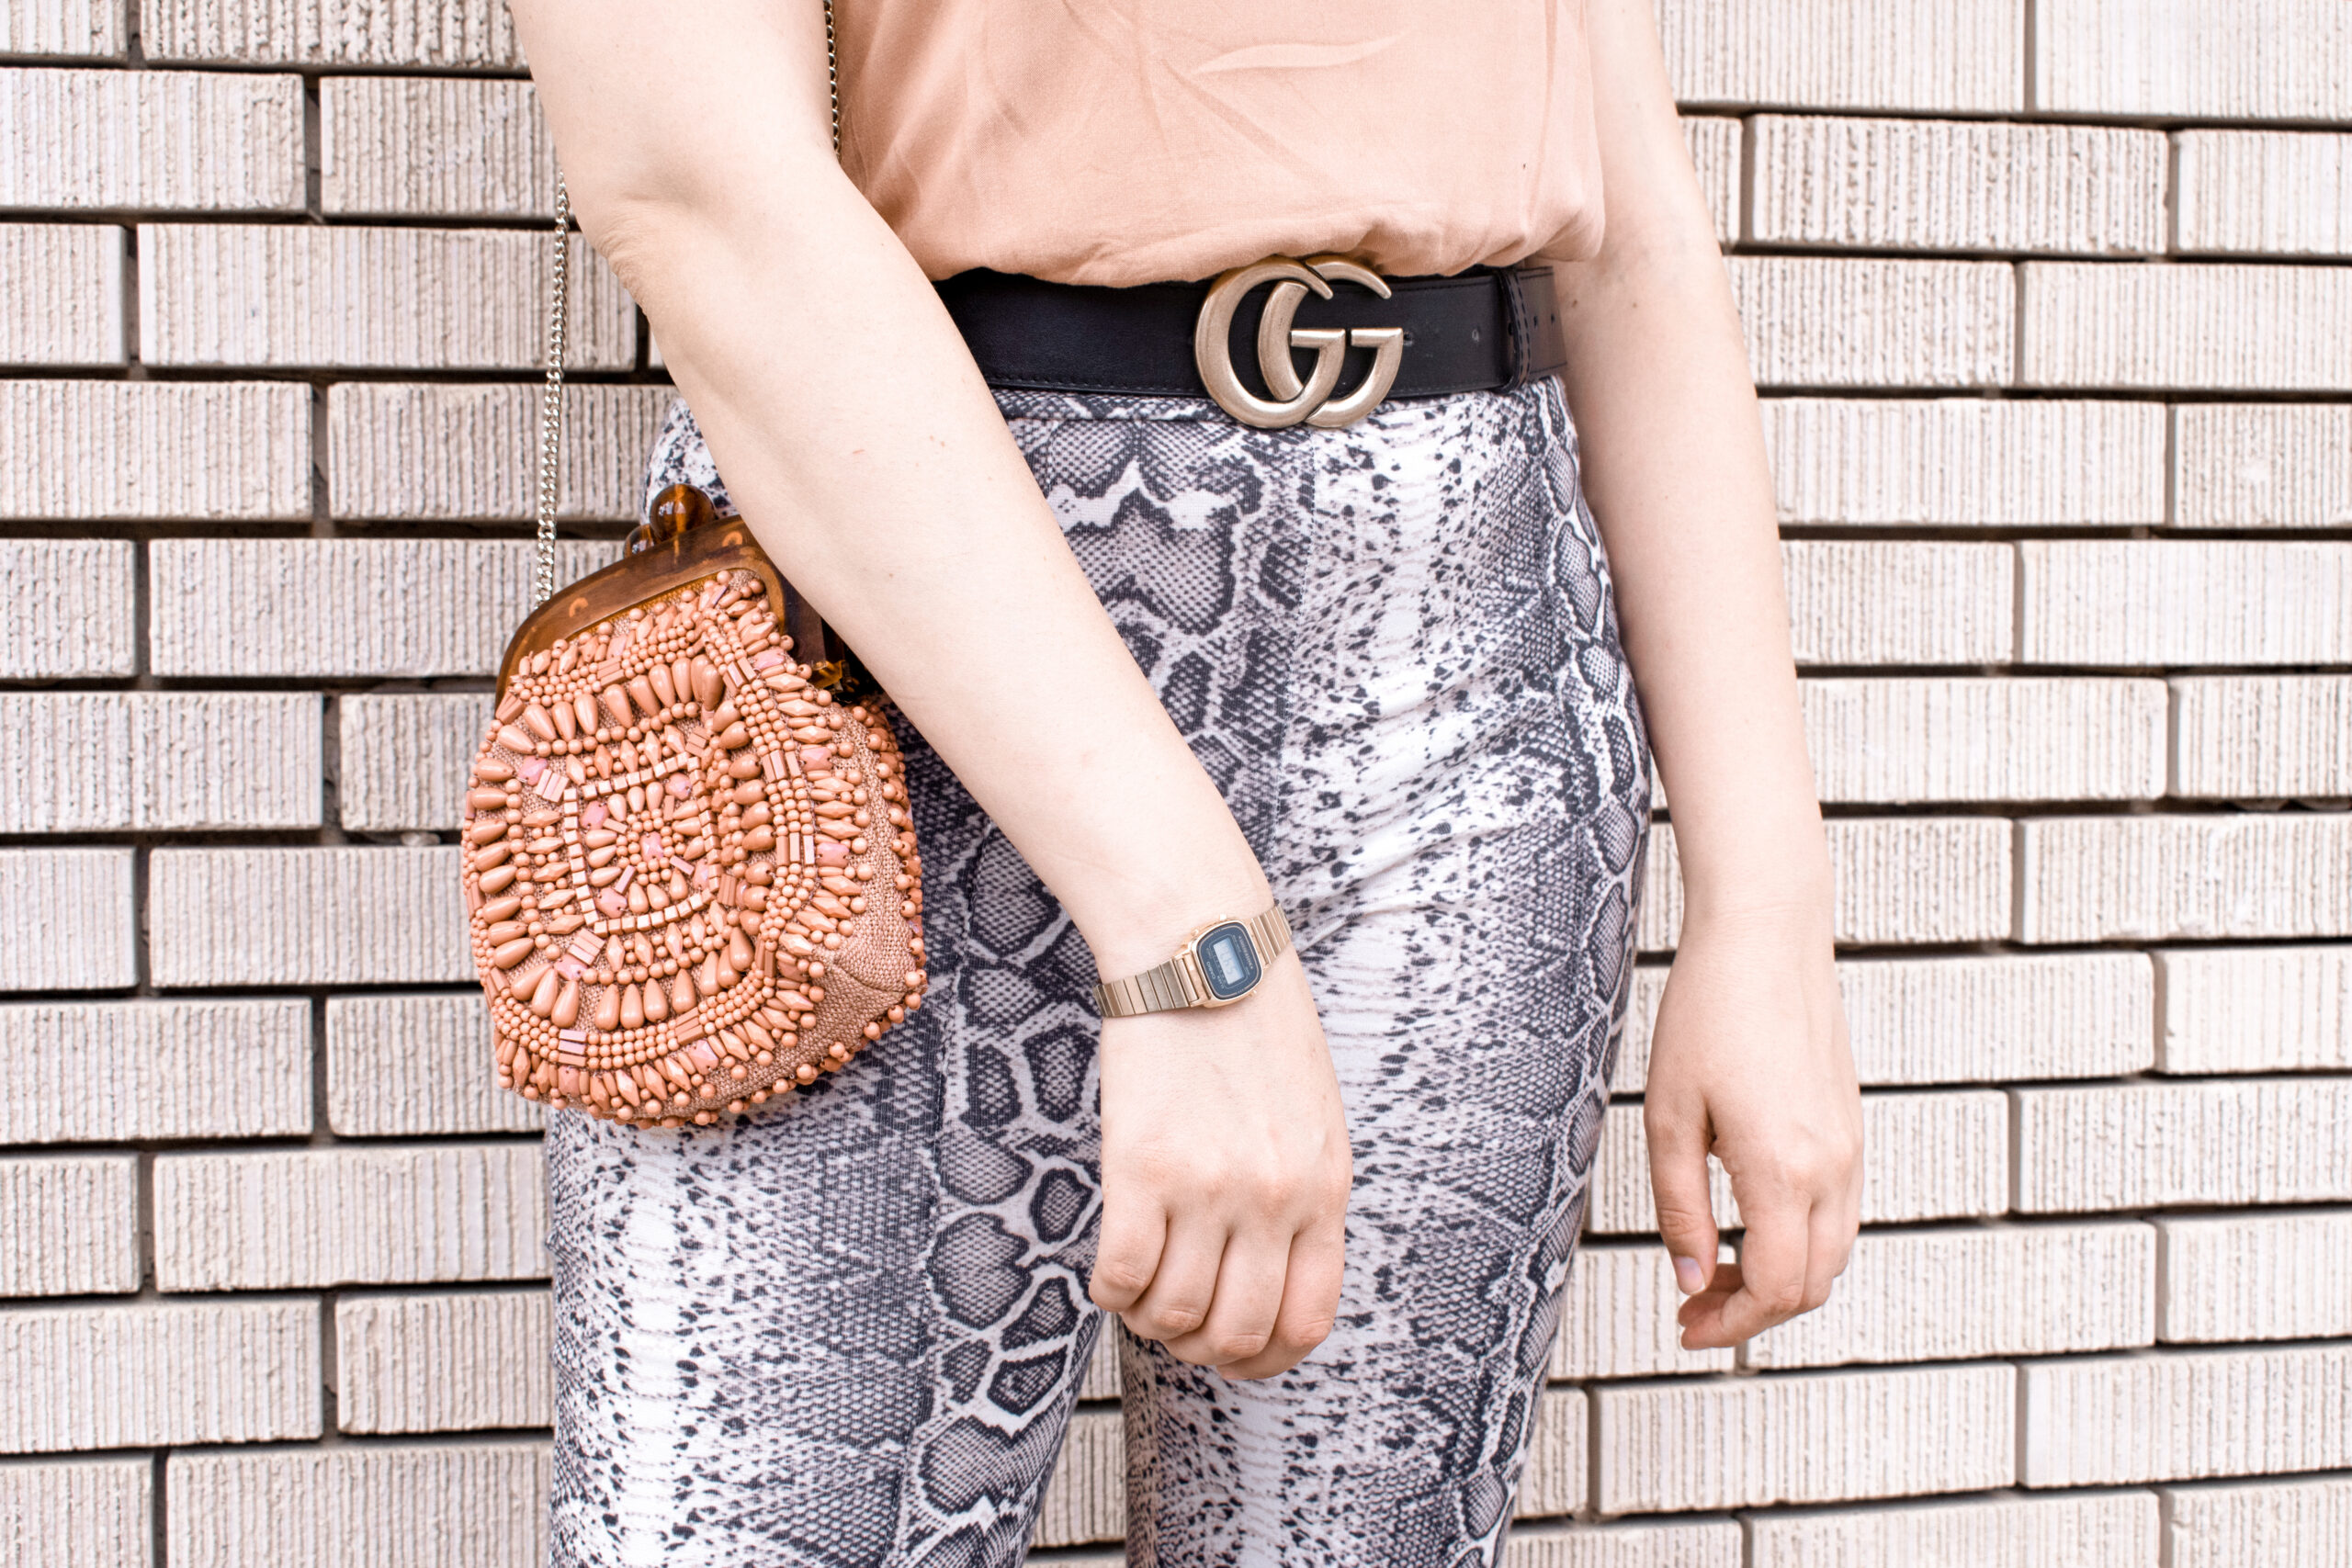 animal print, snake print, flared pants, outfit, ideas, beaded bag, gucchi belt, luxury brands, ootd